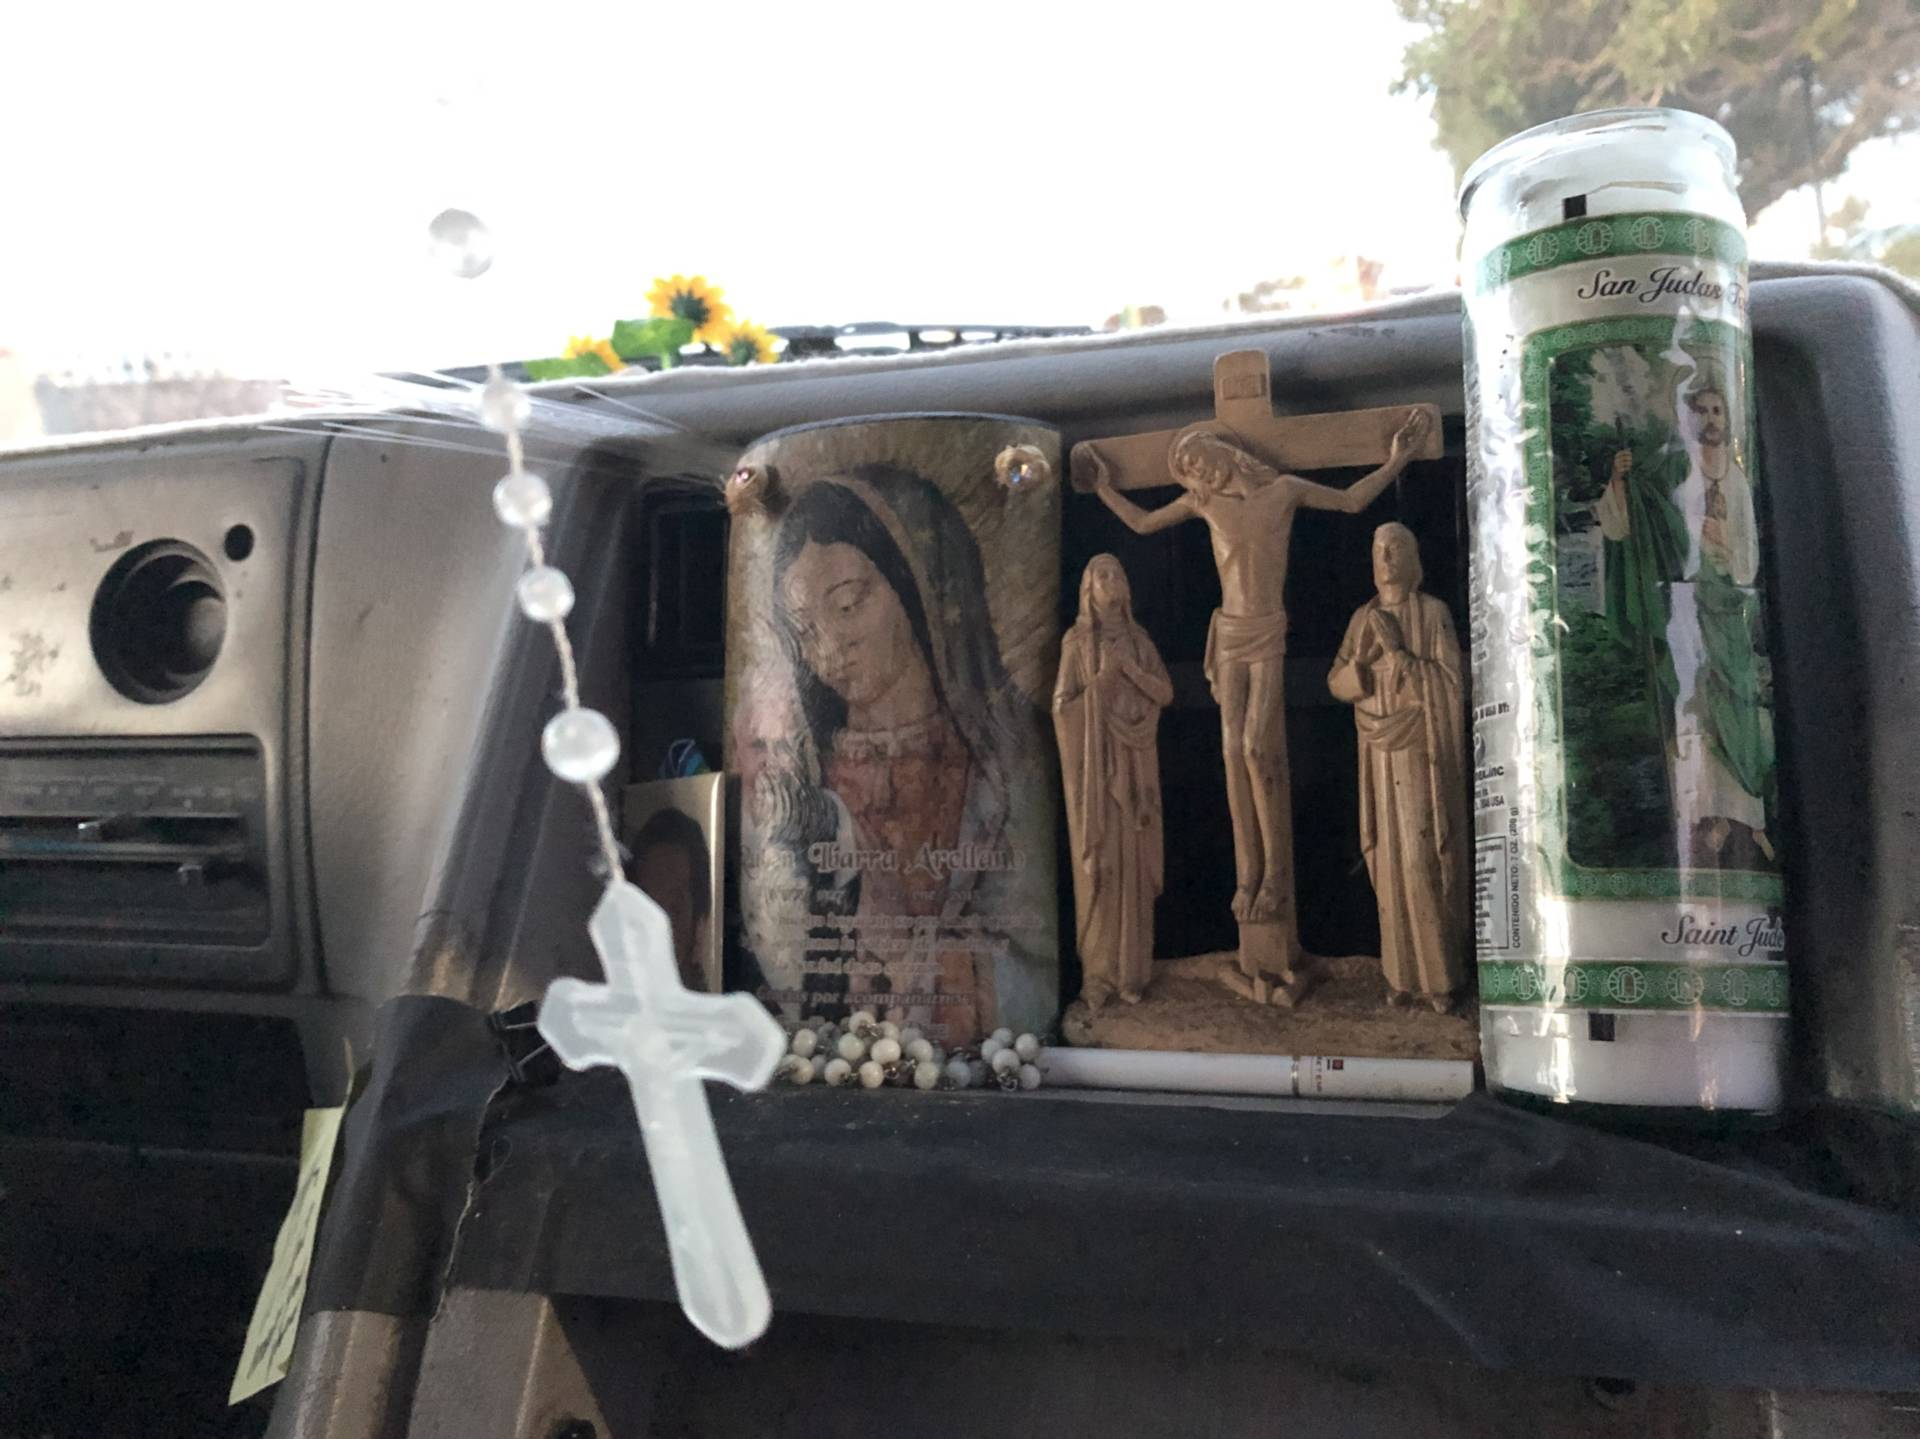 Armando Ibarra, a hotel restaurant worker in San Francisco, lives out of his van to save money — and to avoid an hours-long commute from San Jose. A holy candle rests on his dashboard; a rosary hangs from the rearview mirror.